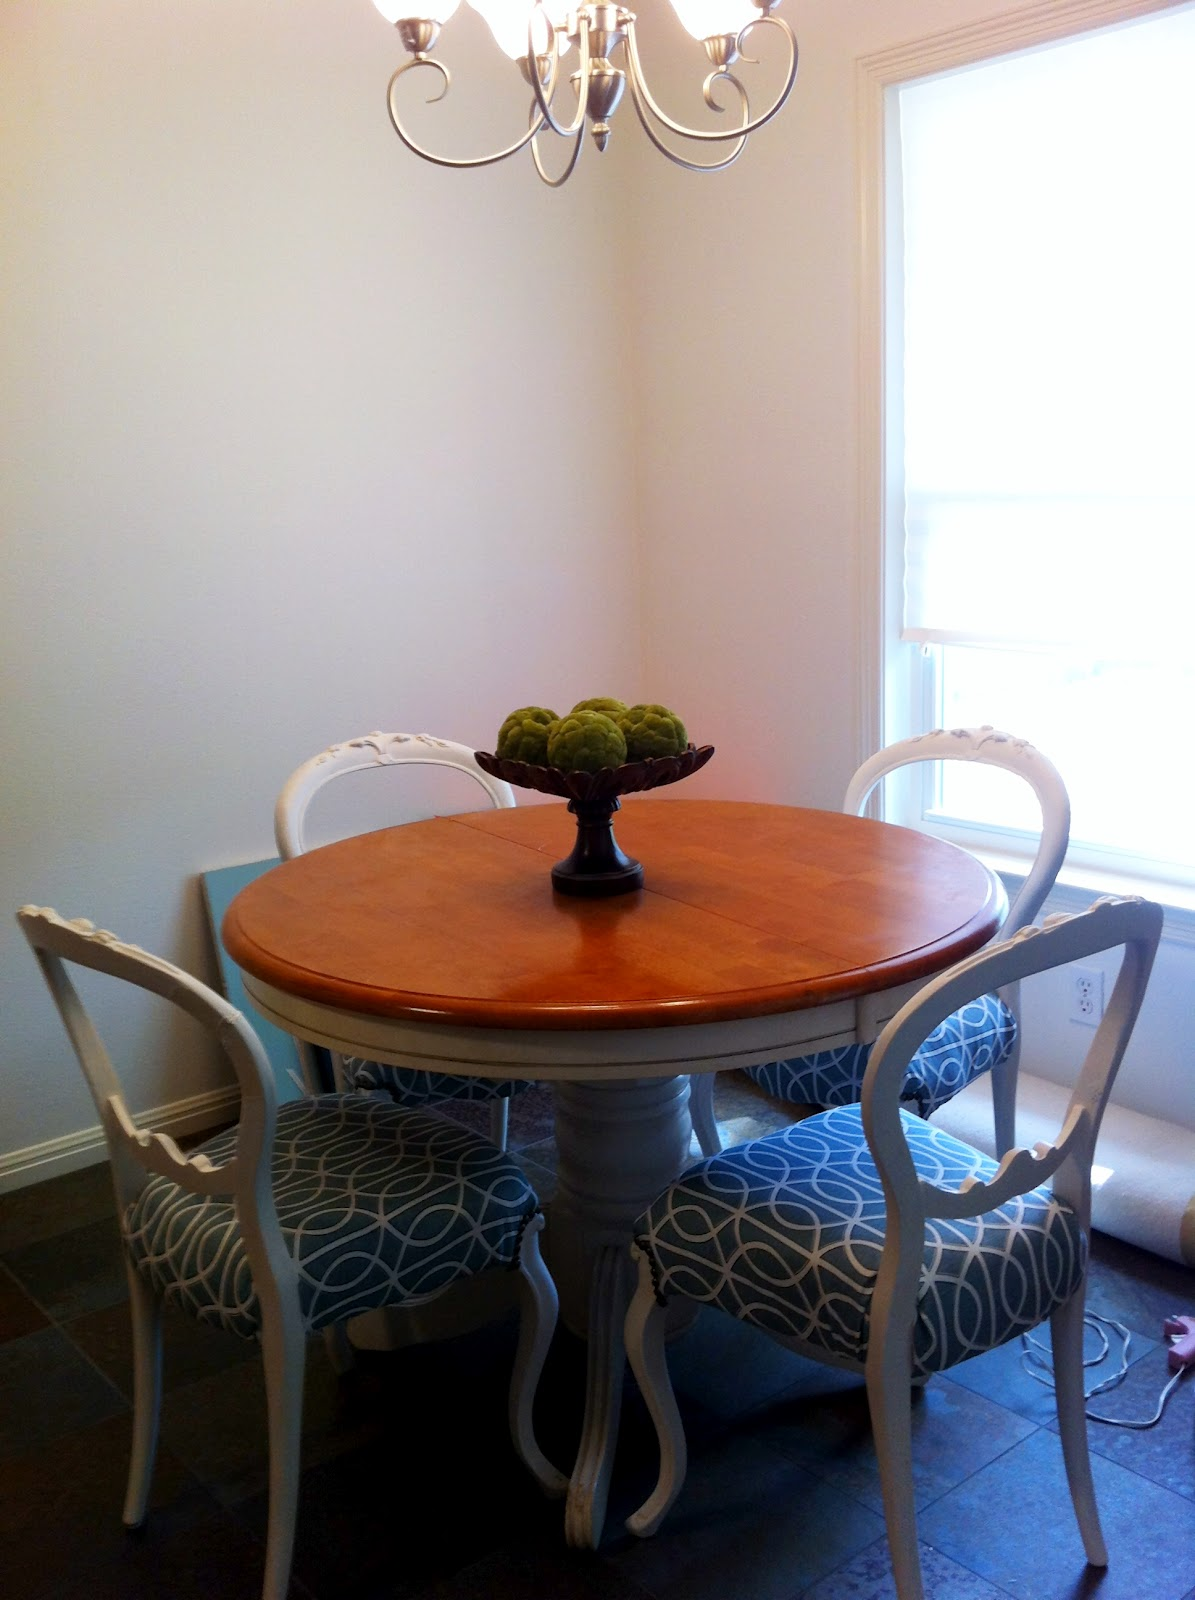 The Bird With The French Fry: Reupholsterd Chairs